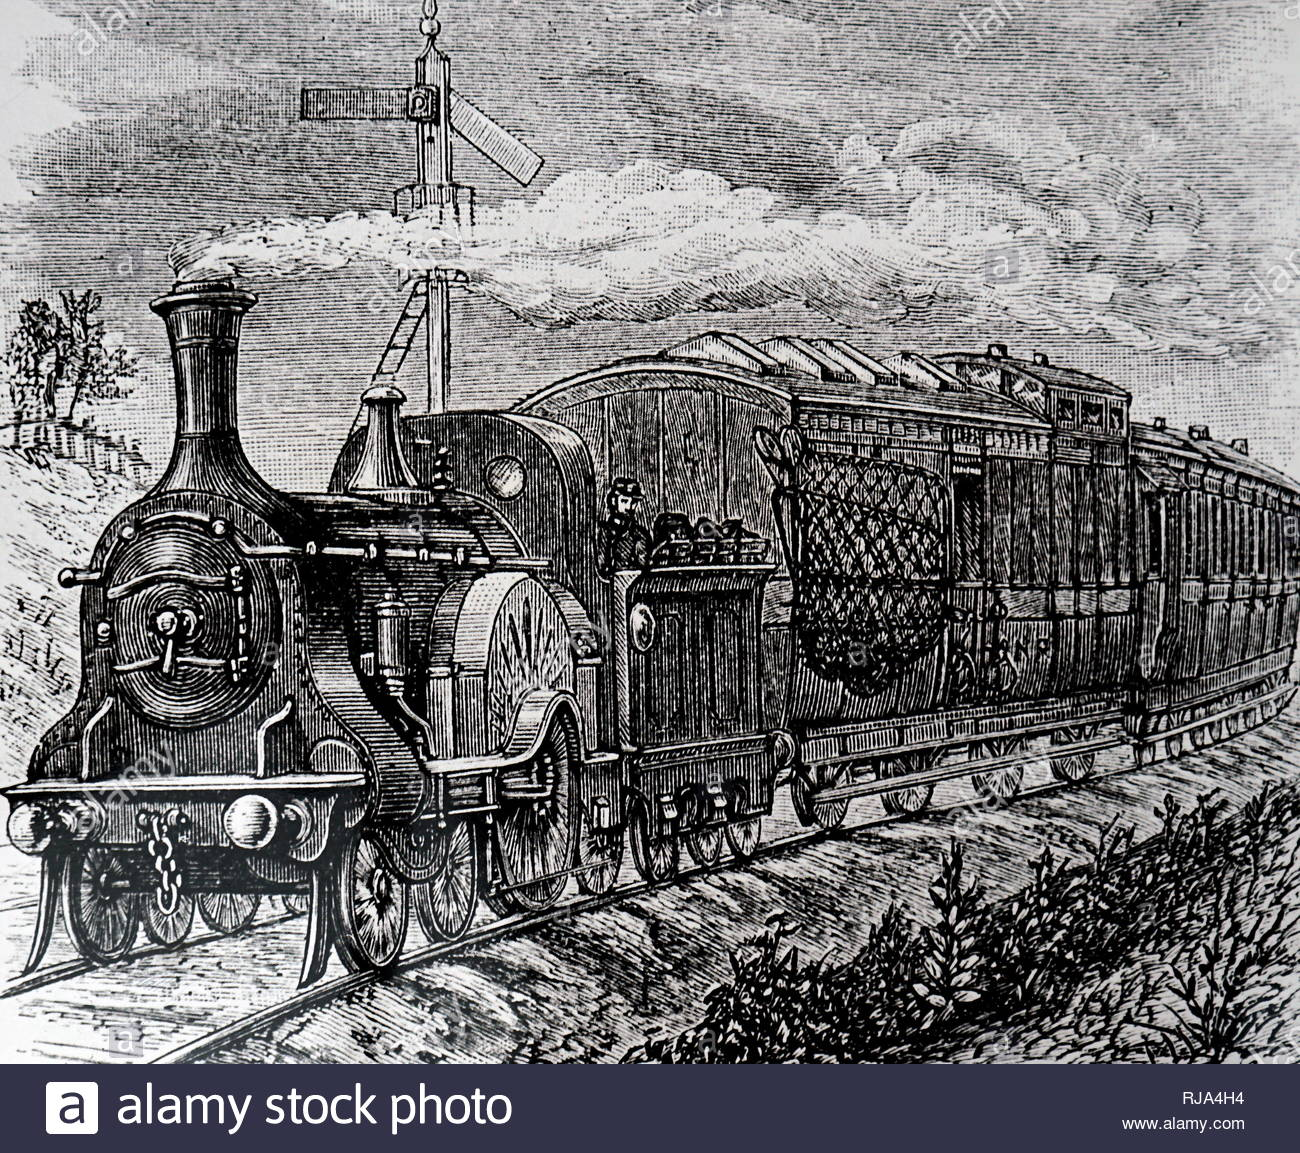 Engraving depicting a mail train on the Great Northern Railway Line. Dated 19th century - Stock Image